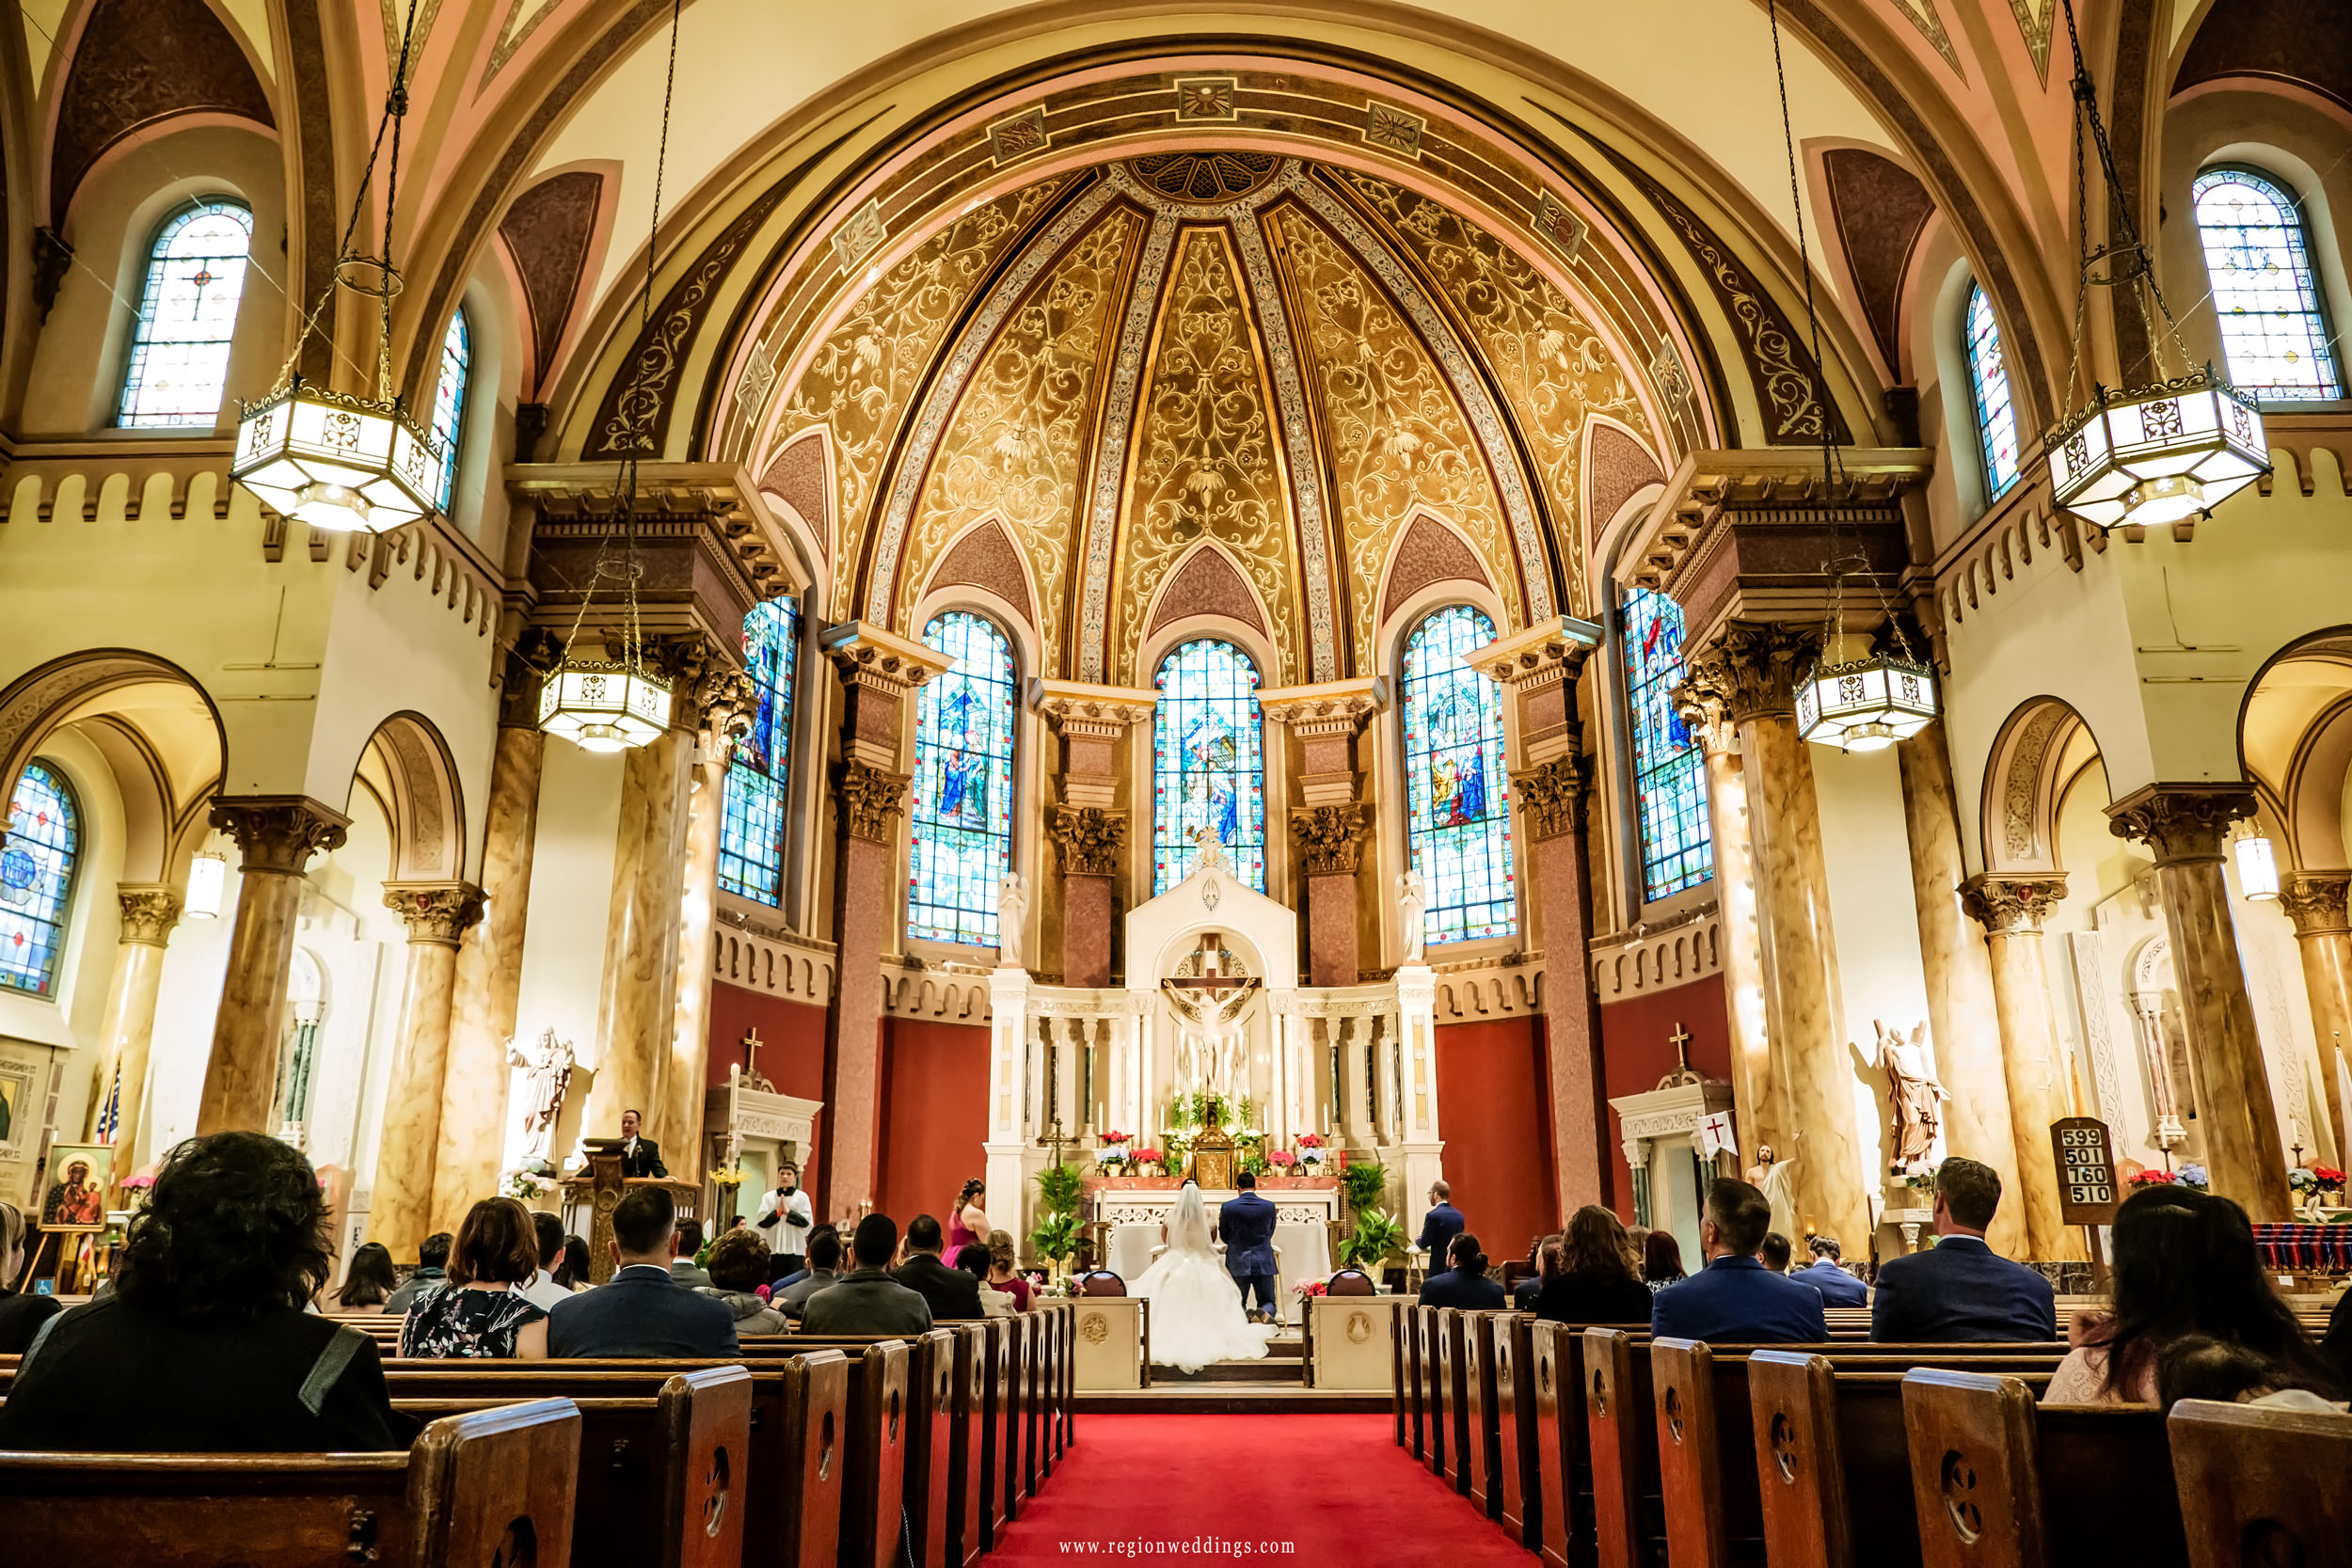 A view from the center aisle during a Chicago wedding ceremony at Saint Andrew The Apostle Church.